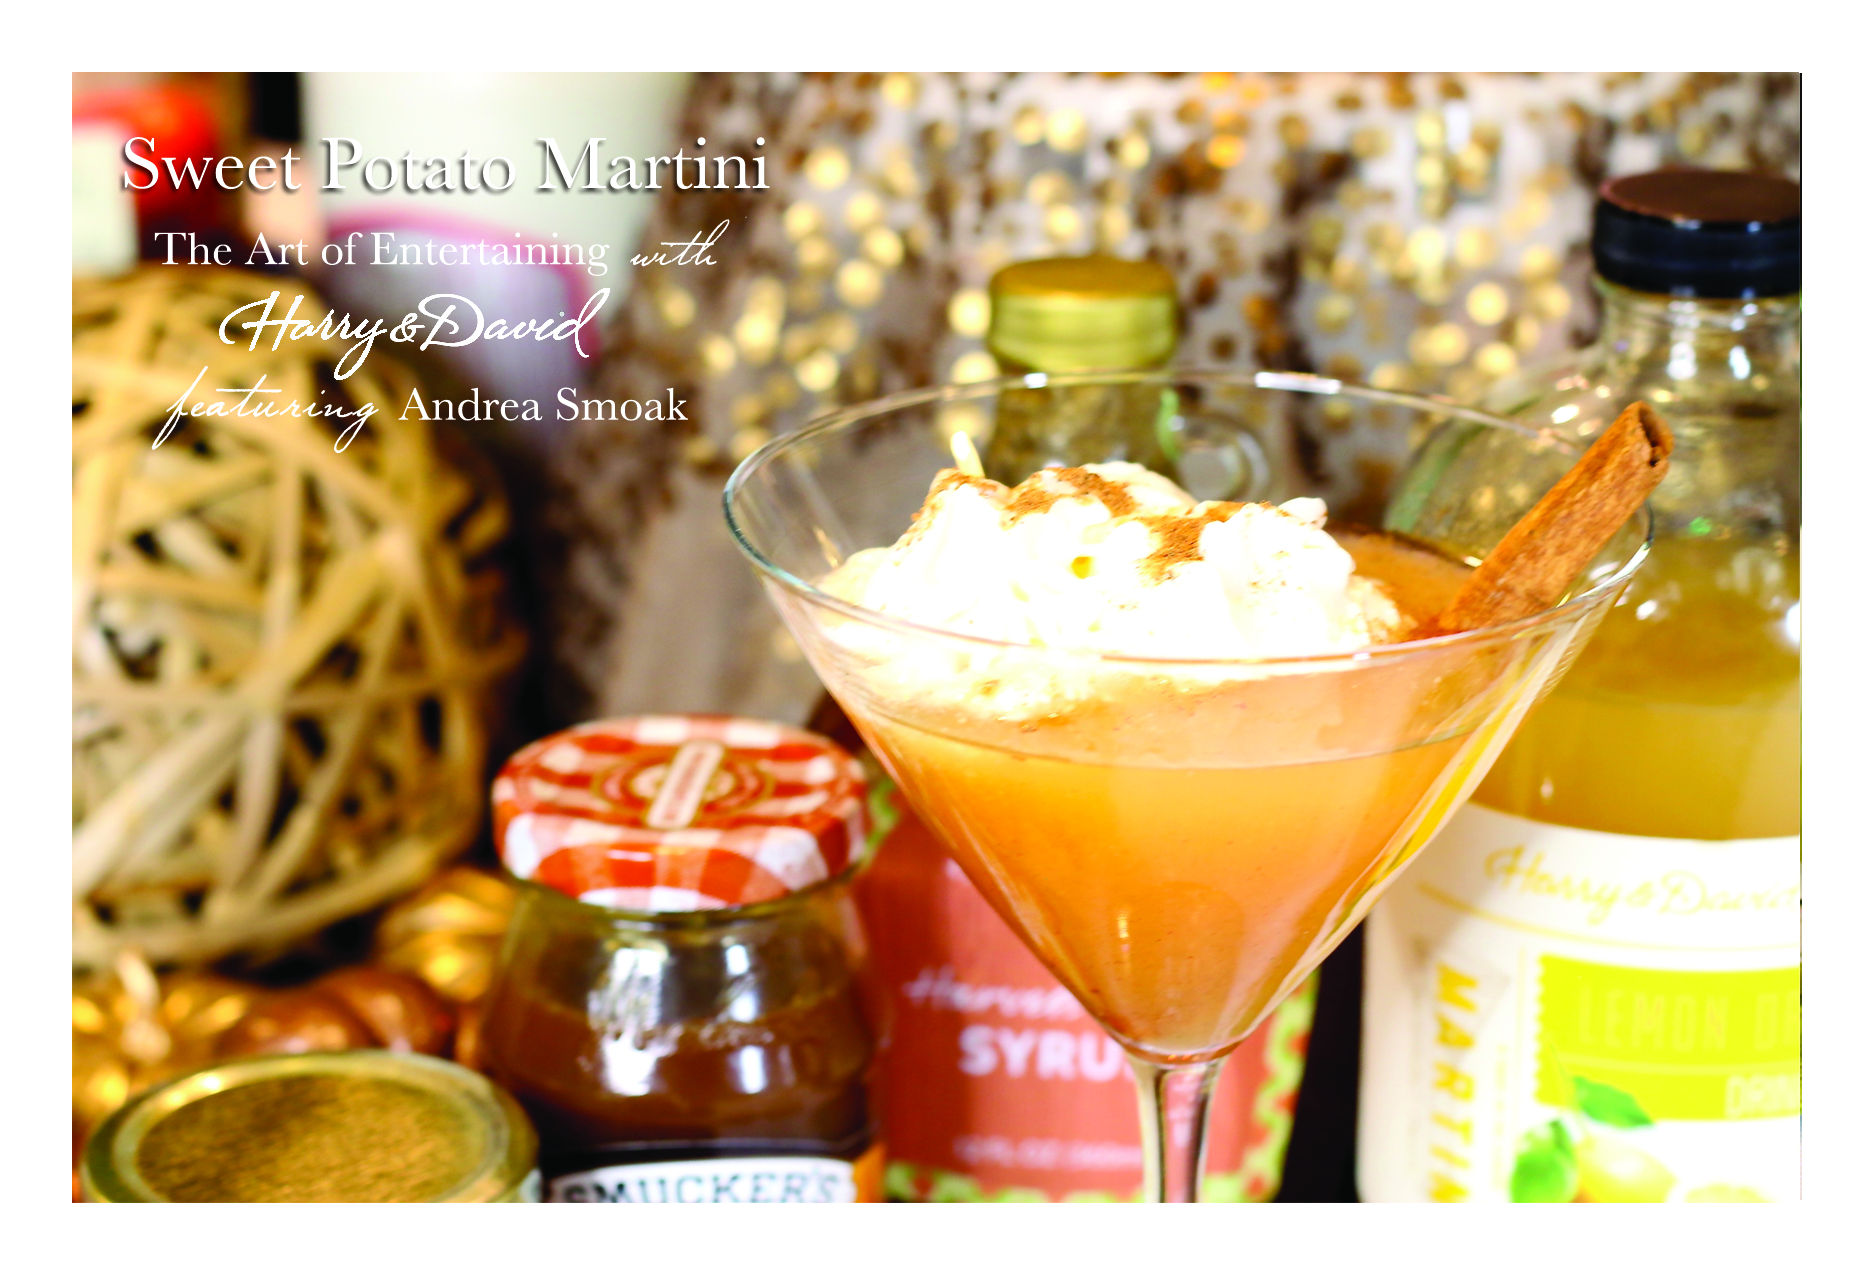 Sweet_Potato_Martini_4x6_Landscape.jpg